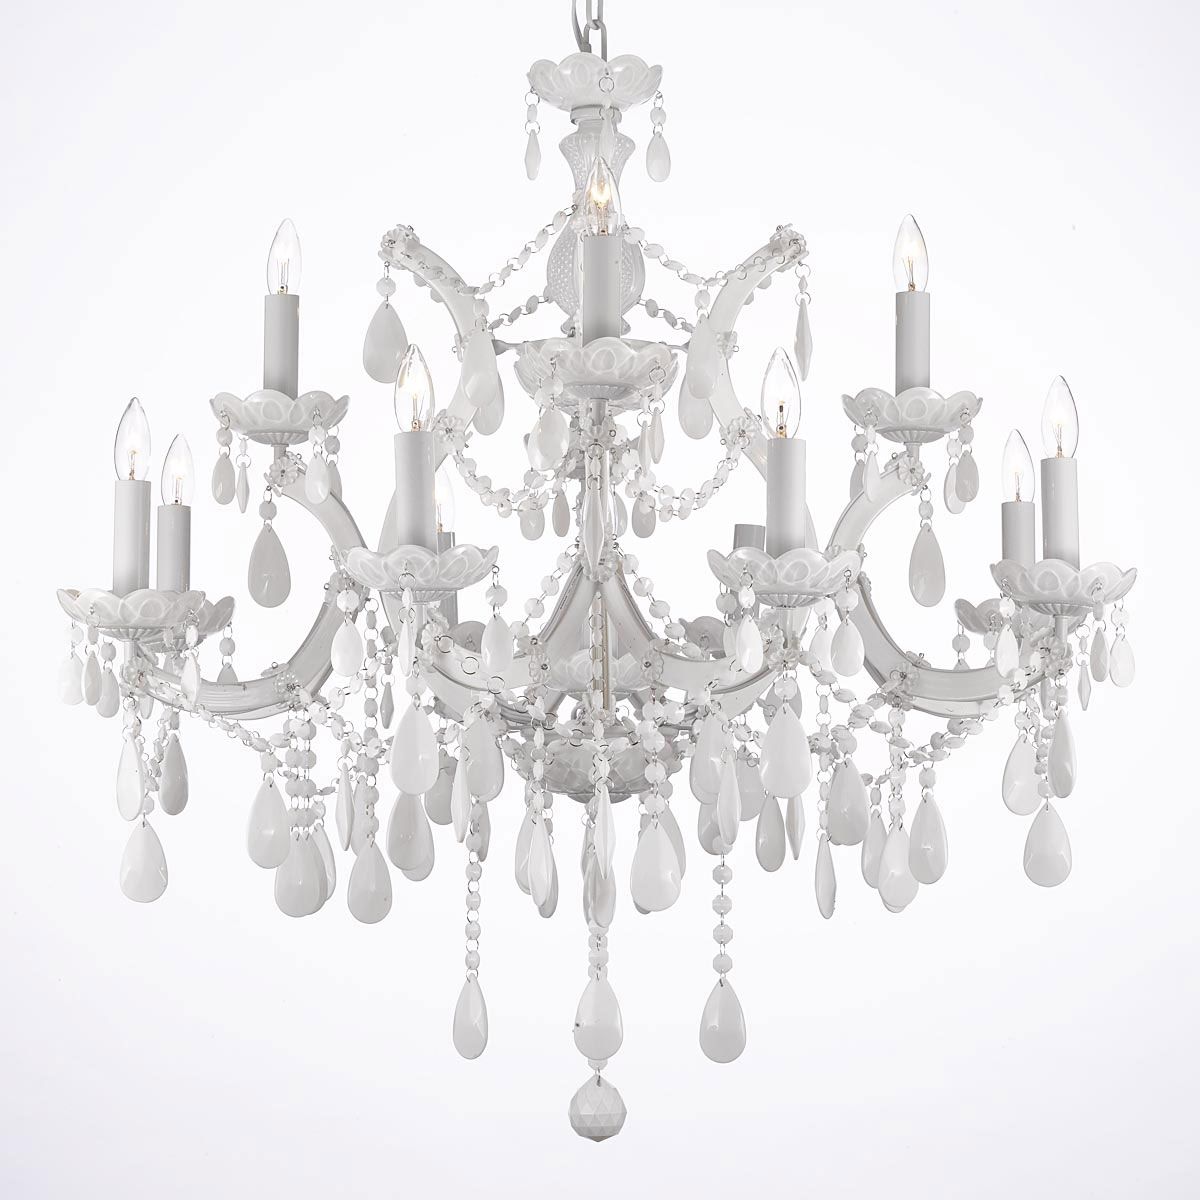 Chandelier Chandeliers Crystal Chandelier Crystal Chandeliers Throughout White Chandeliers (#4 of 12)